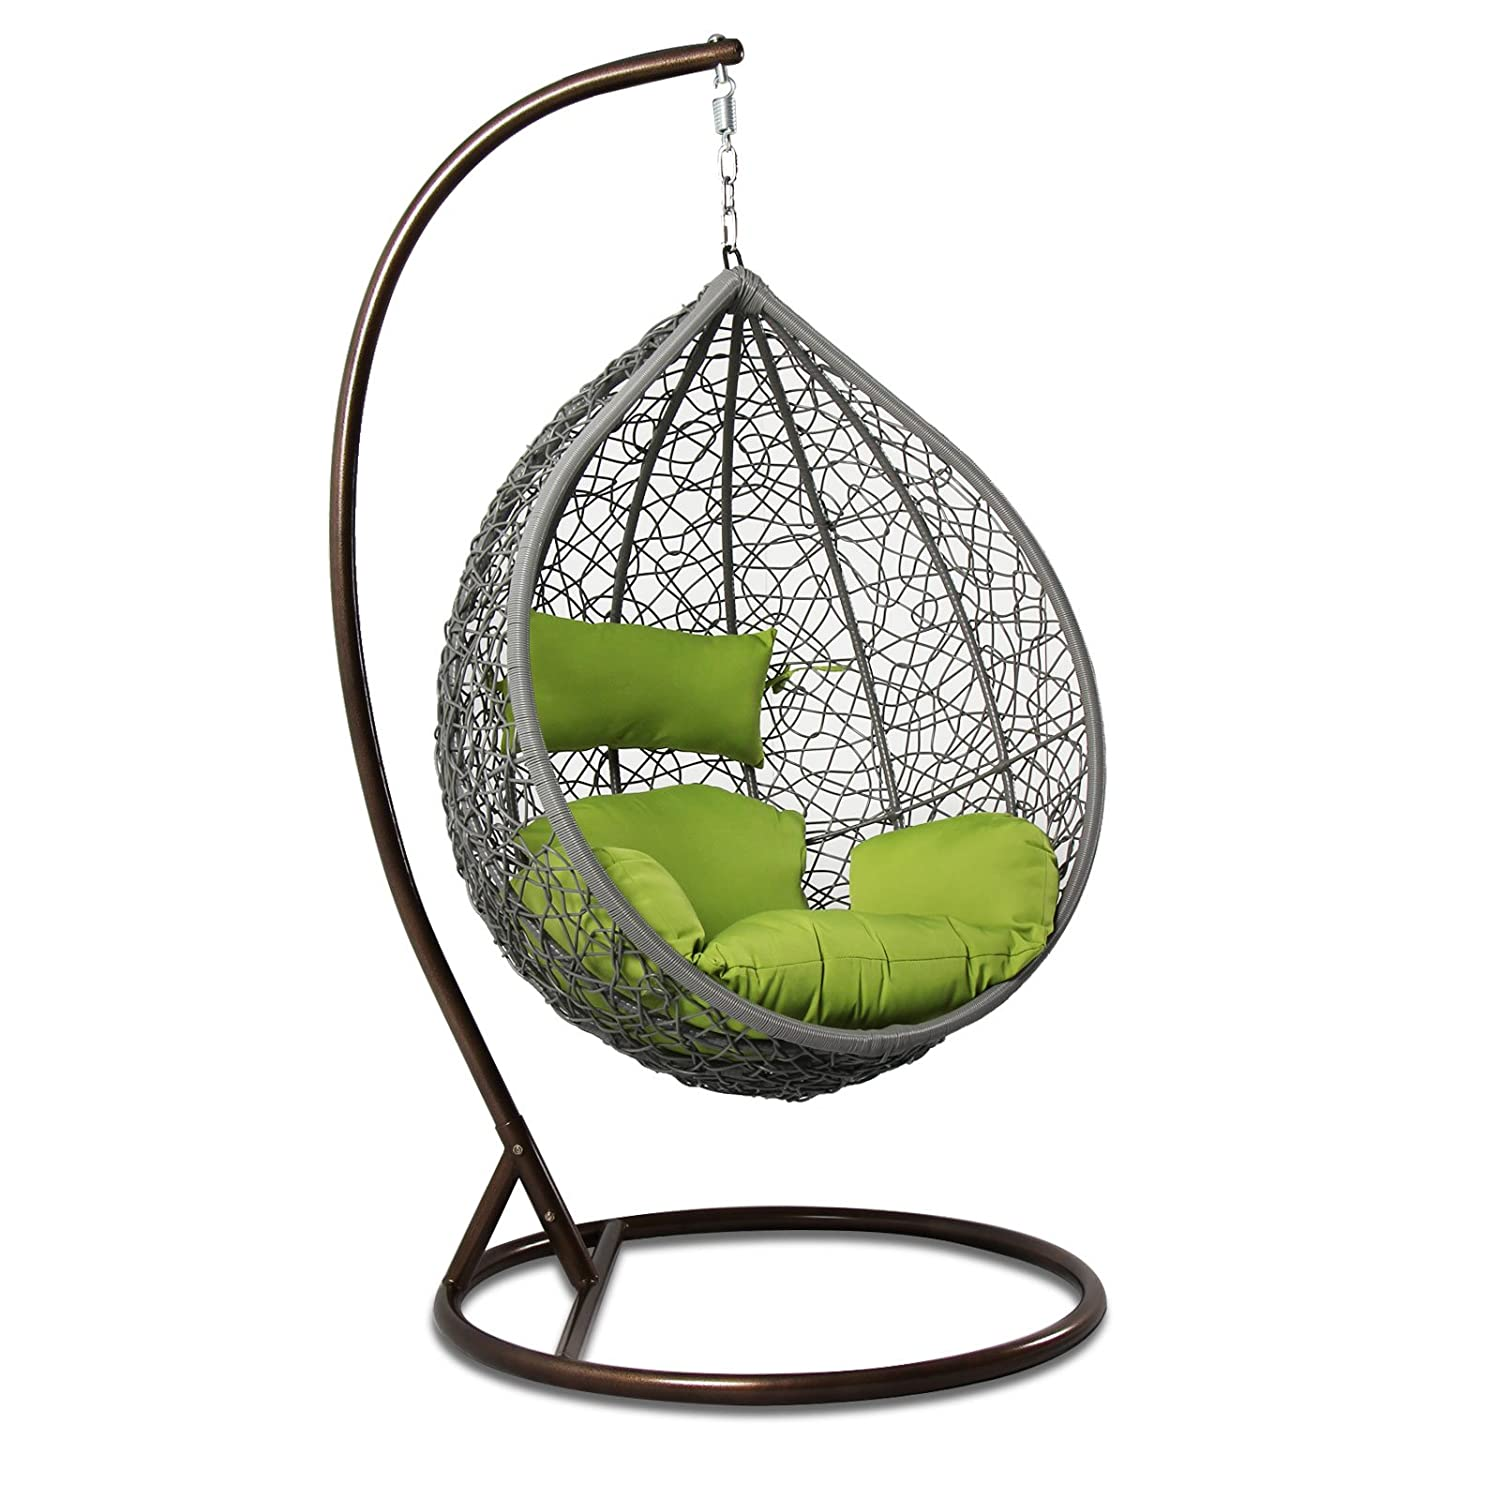 Island Gale Hanging Basket Chair Outdoor Front Porch Furniture with Stand and Cushion Grey Wicker, Lime Cushion